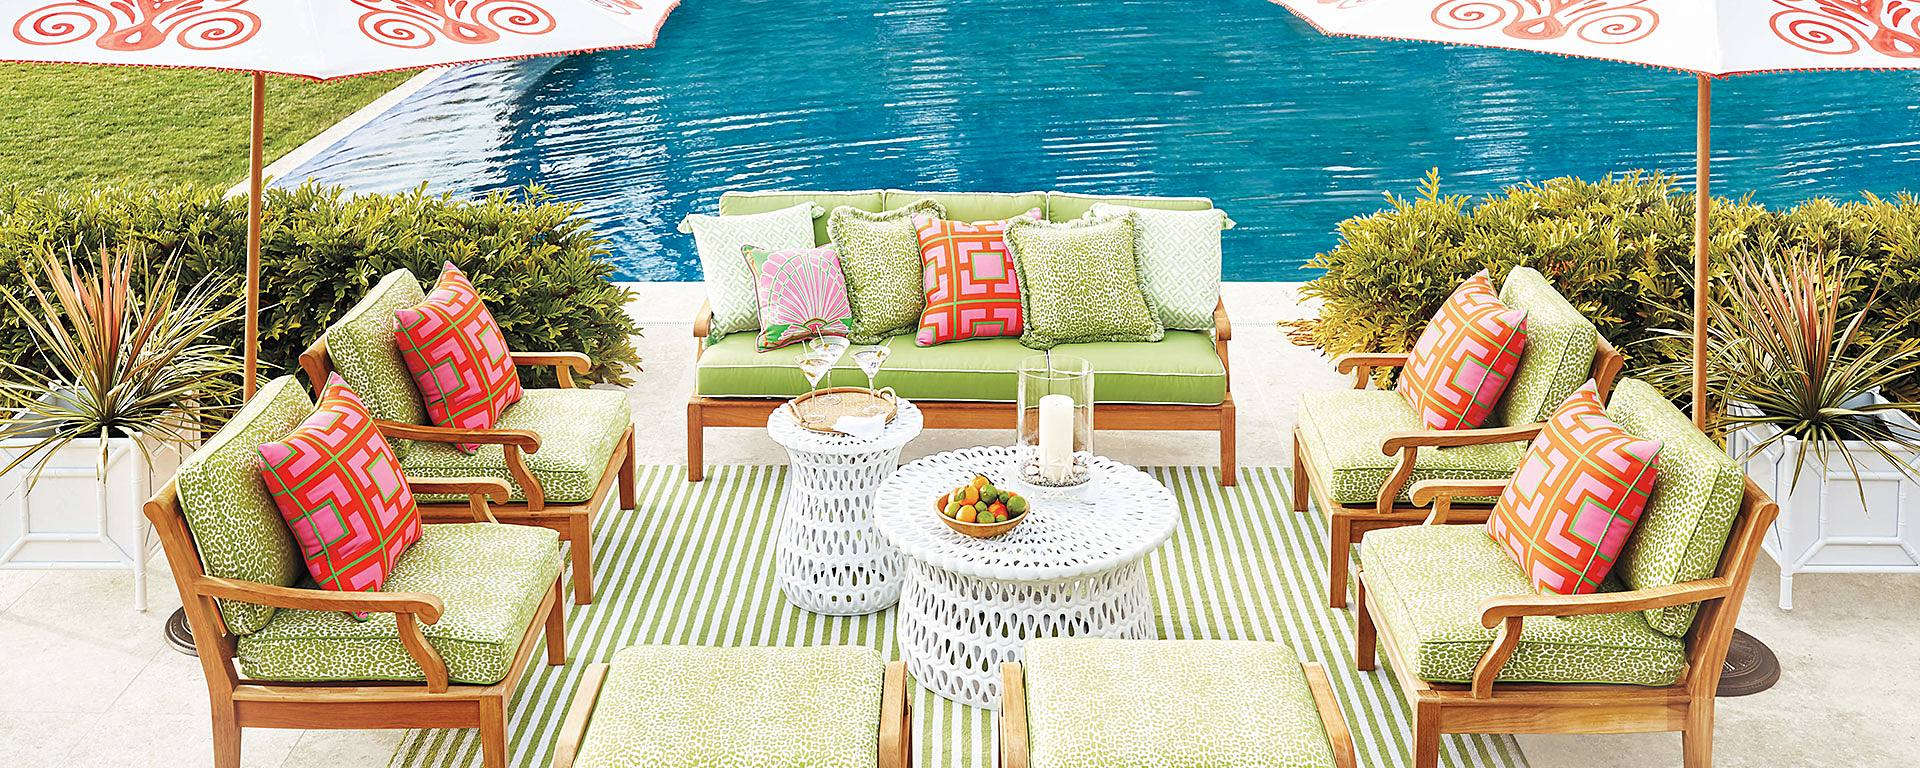 HOW TO BRING THE PARTY TO YOUR OUTDOOR SPACE